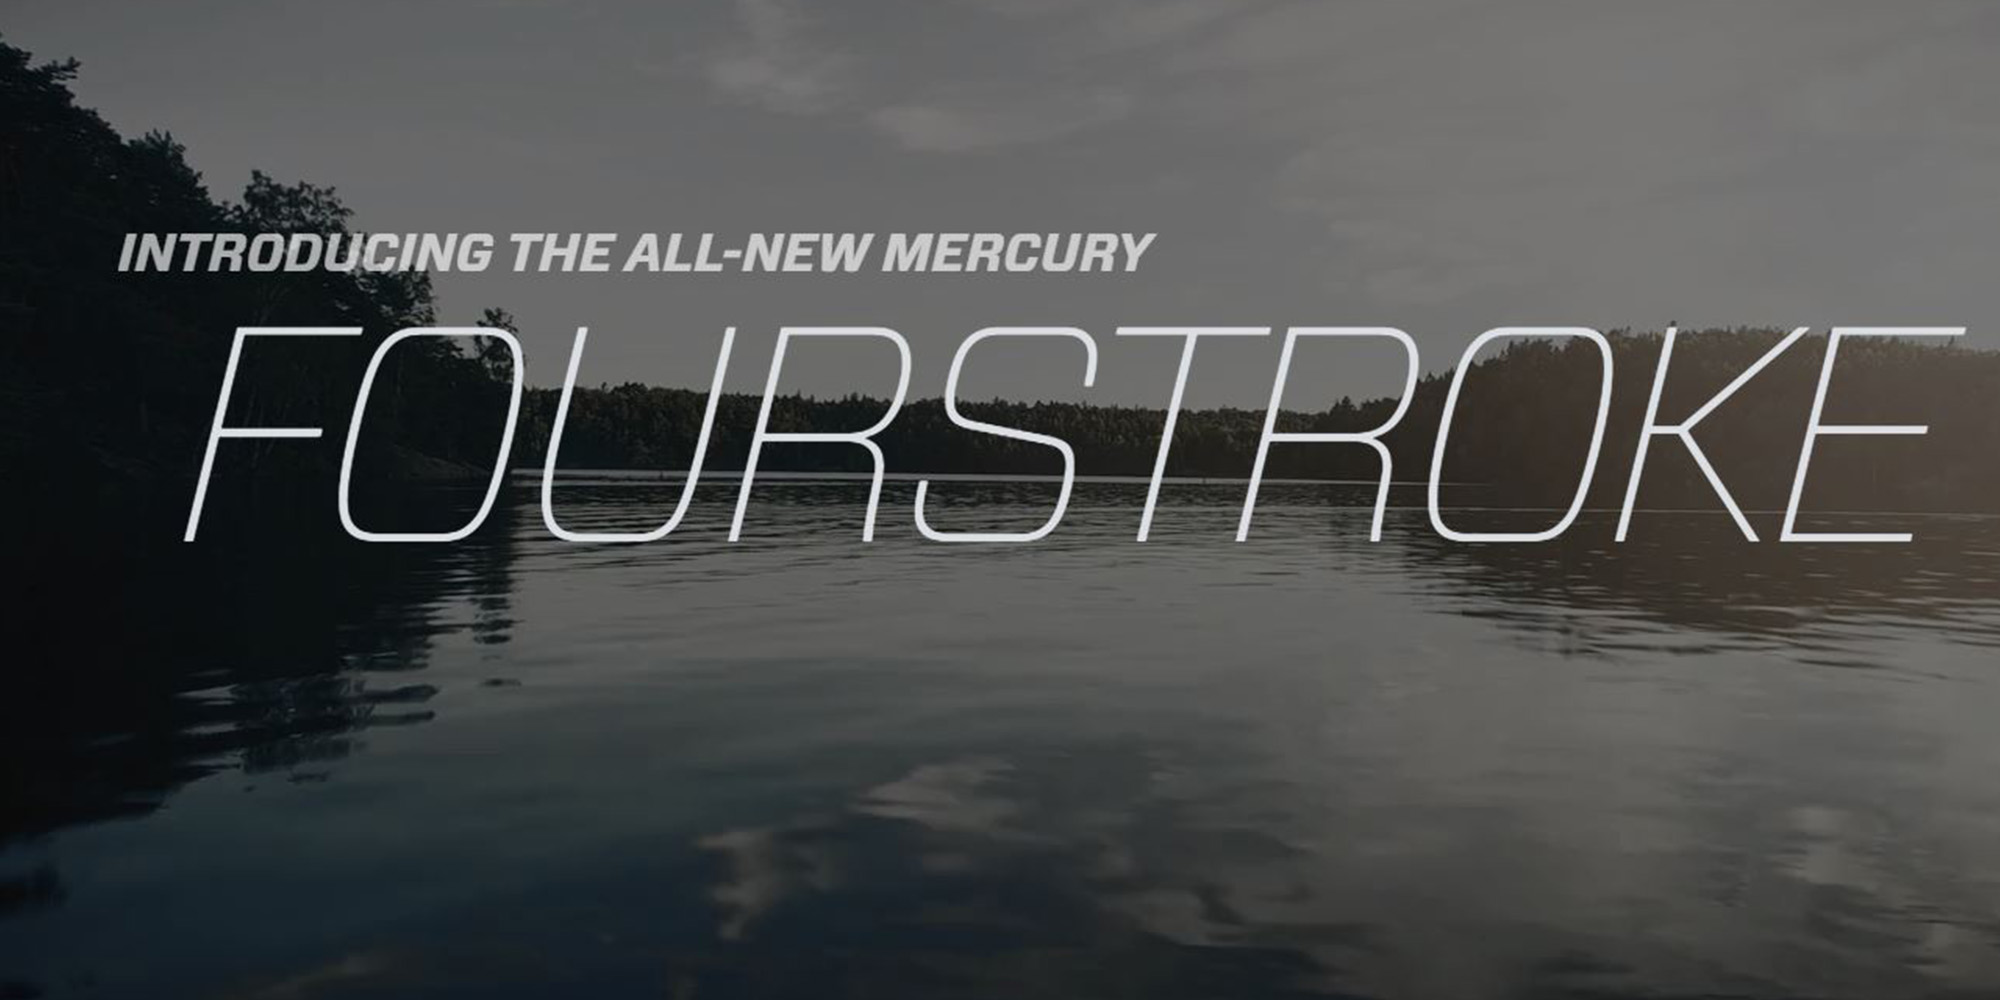 A New Era in Fourstroke! Mercury expands the V6 FourStroke